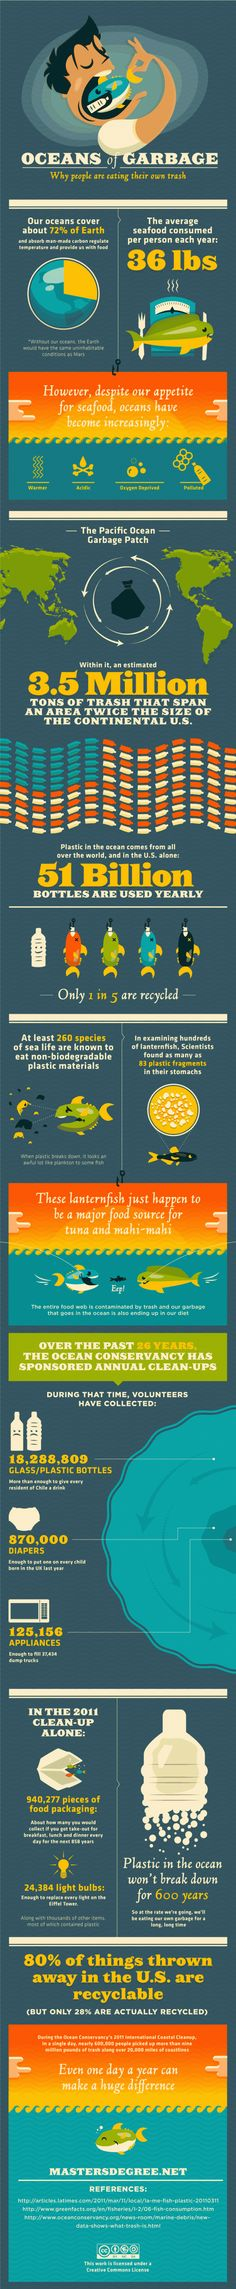 Let's be responsible and take care of our earth! Ocean Garbage - Pollution Infographic | Design.org #infographic #pollution #saveourplanet!